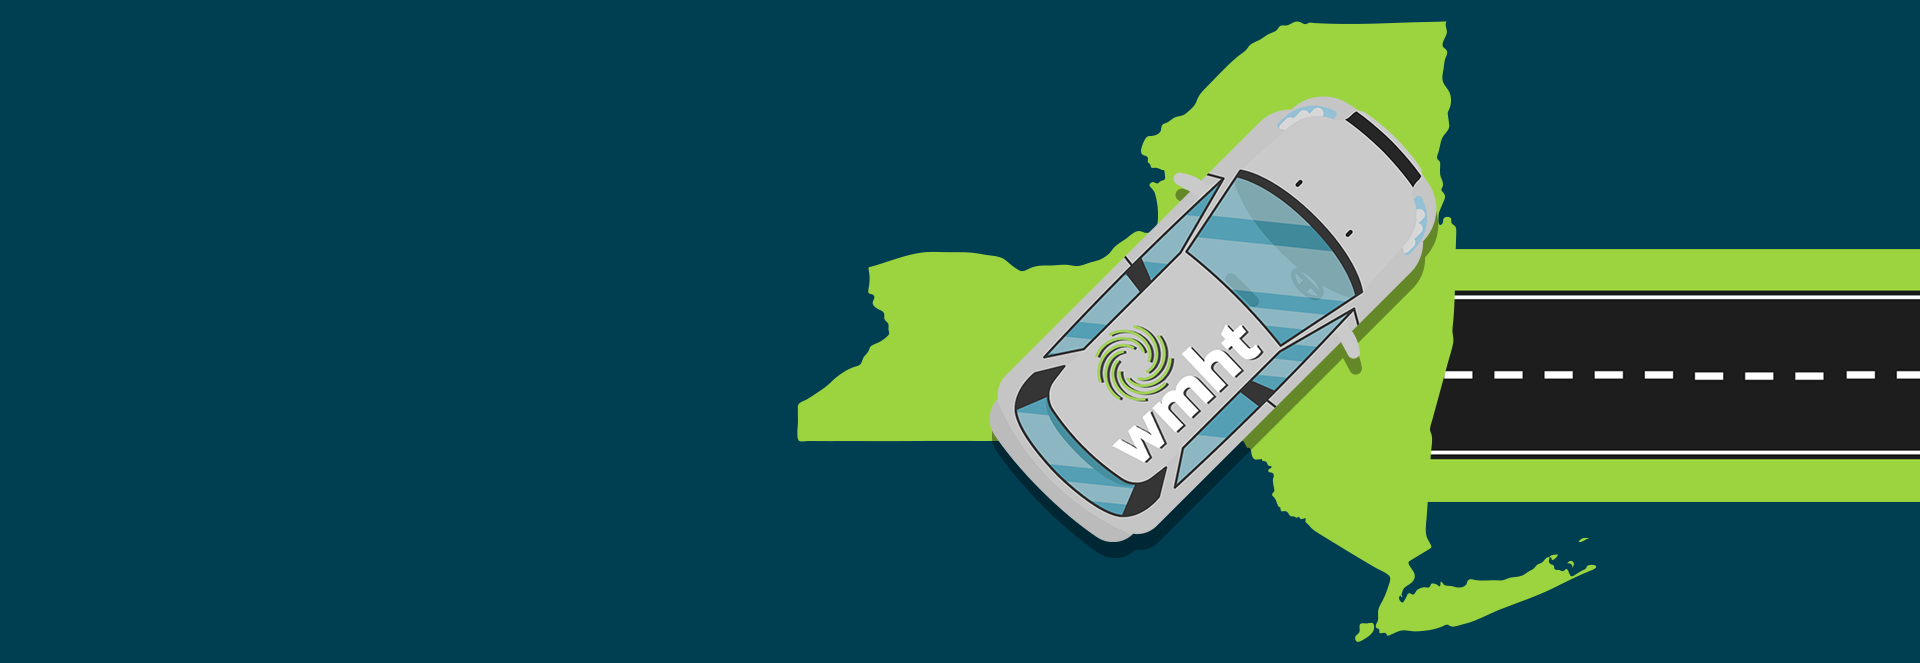 Illustration of a gray mini-van with the WMHT logo on the roof on an outline of New York State with a road leading to it and the Field Trip logo